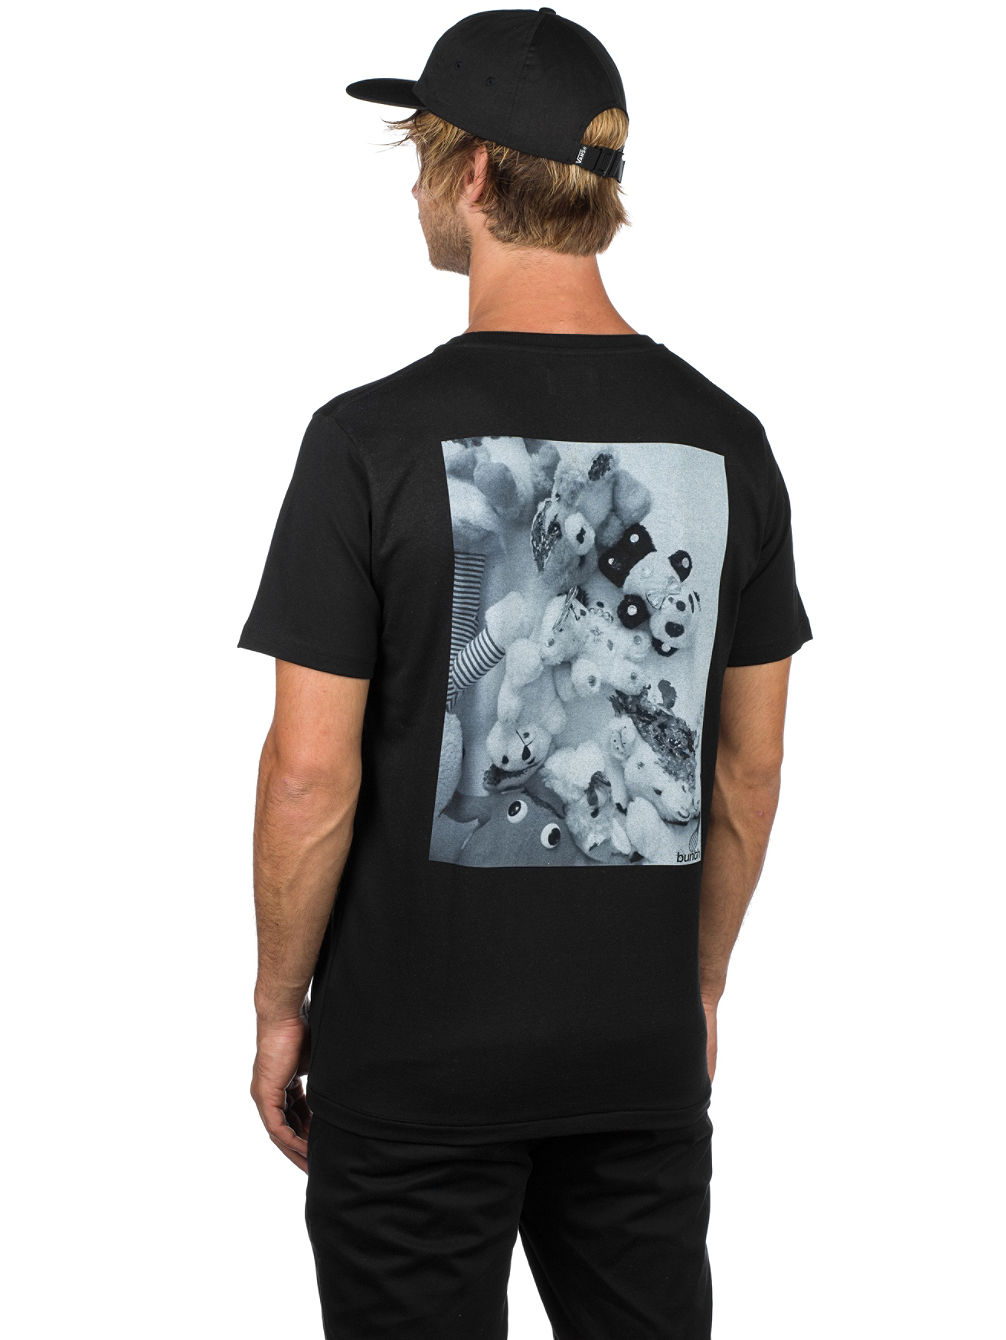 Buy Bunth Backprint T Shirt Online At Blue Tomato